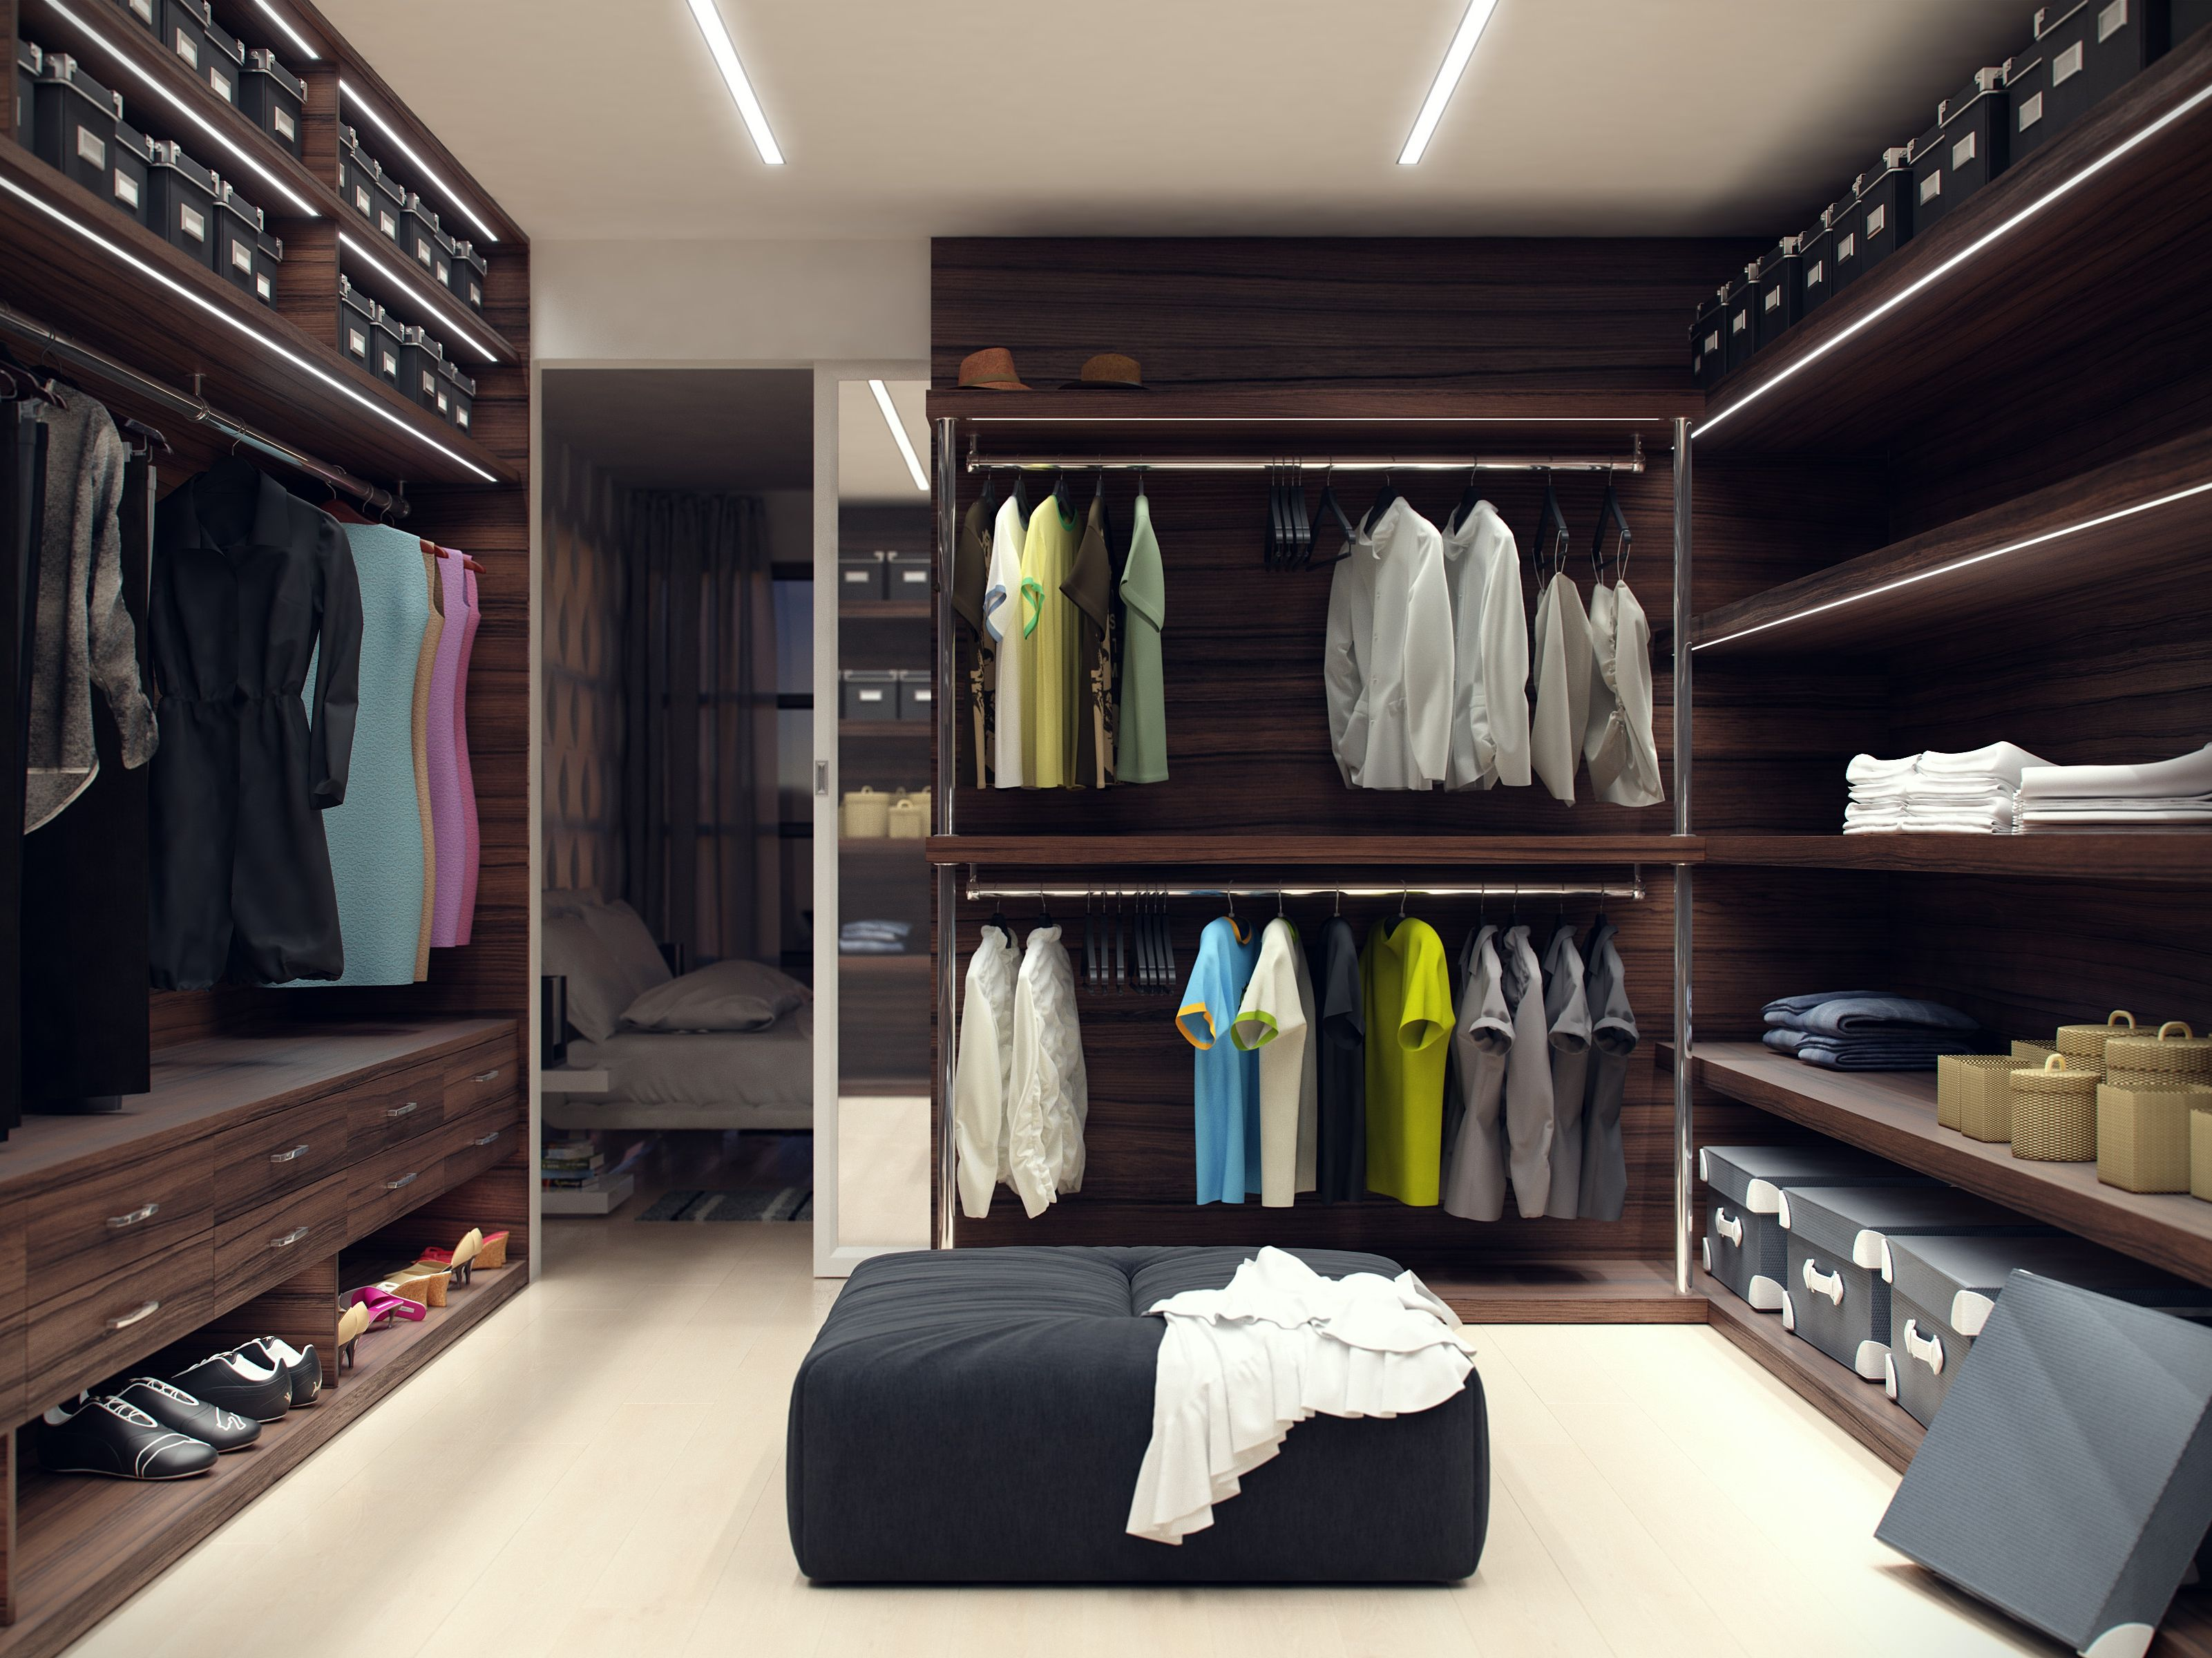 Pin By Laurie Treiber On Closet Storage Ideas In 2020 Master